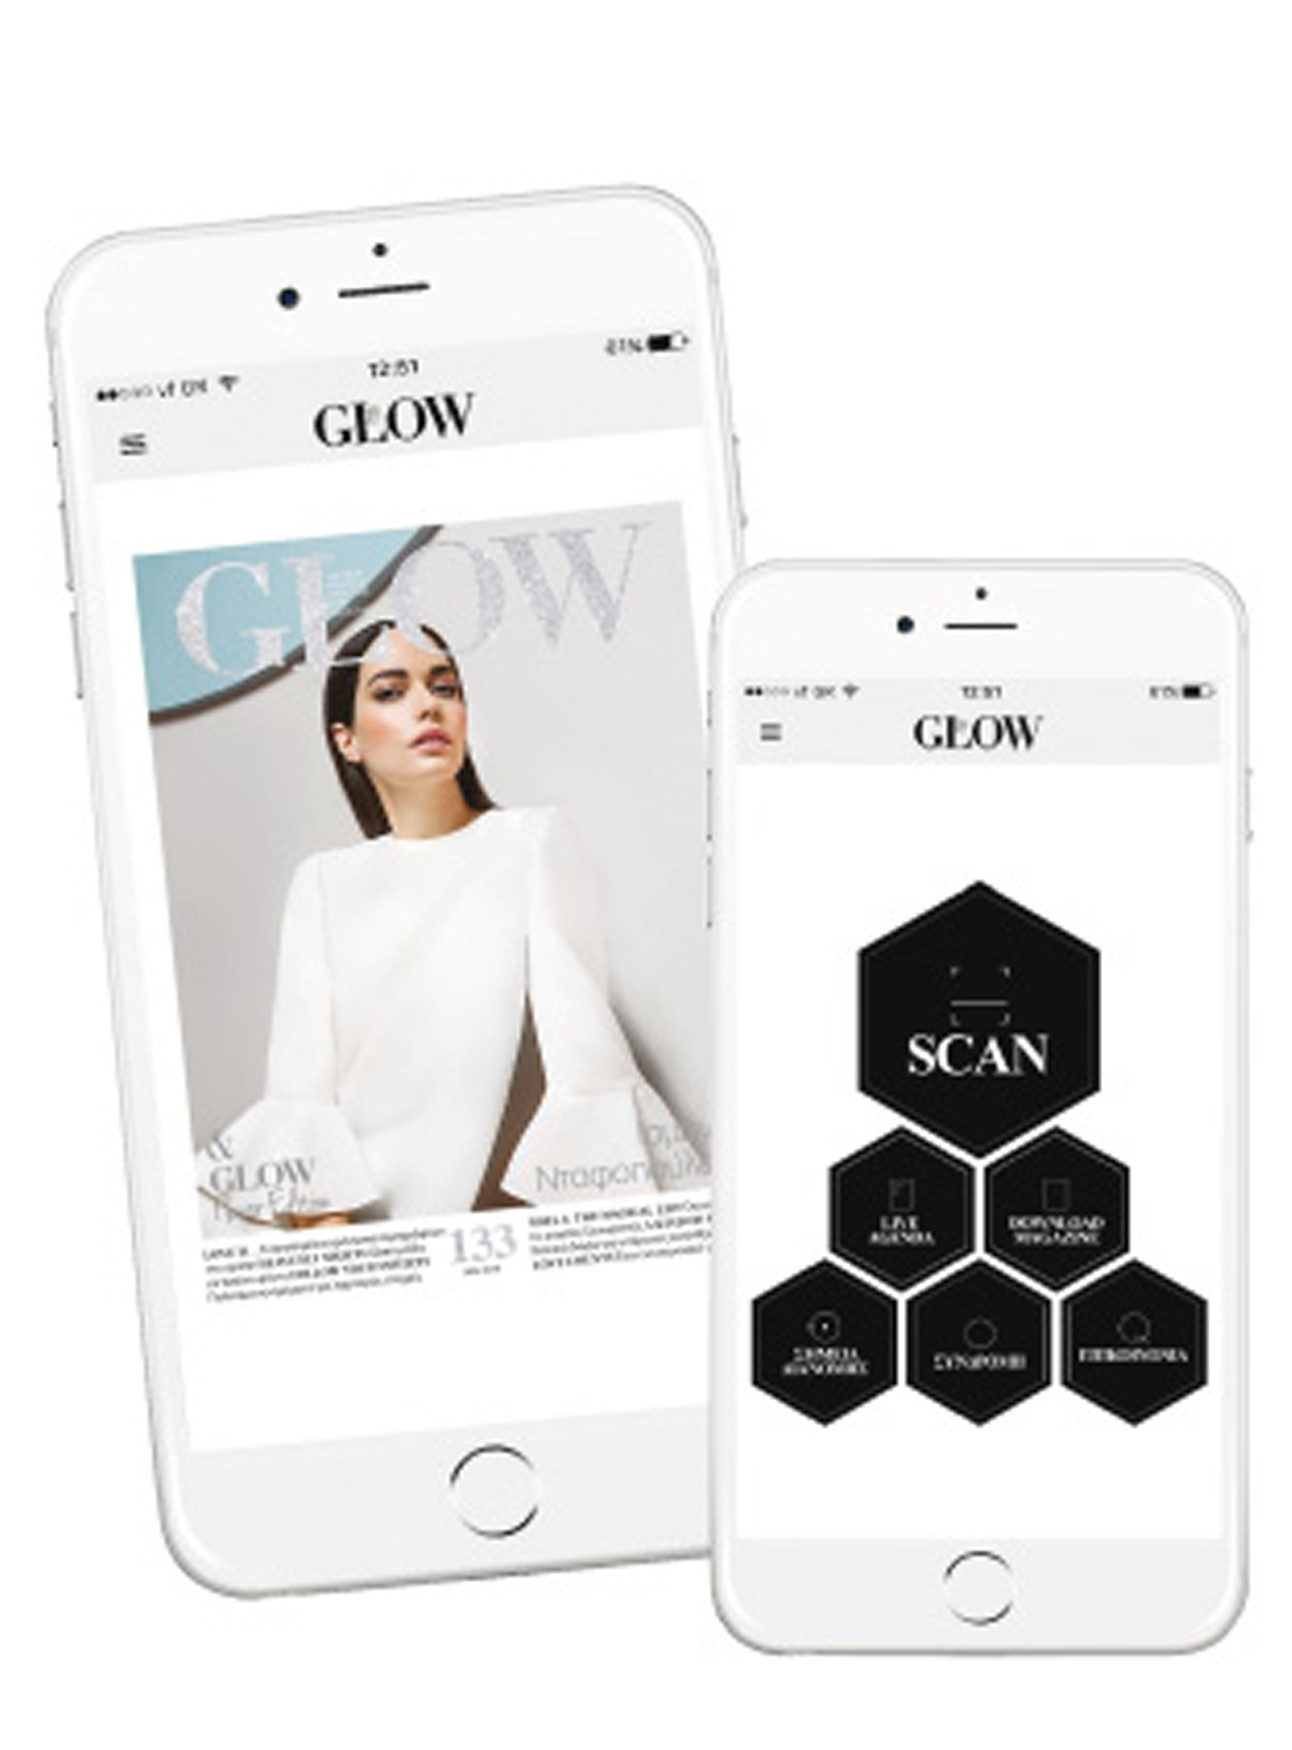 GLOW App - Scan. Discover. Enjoy.